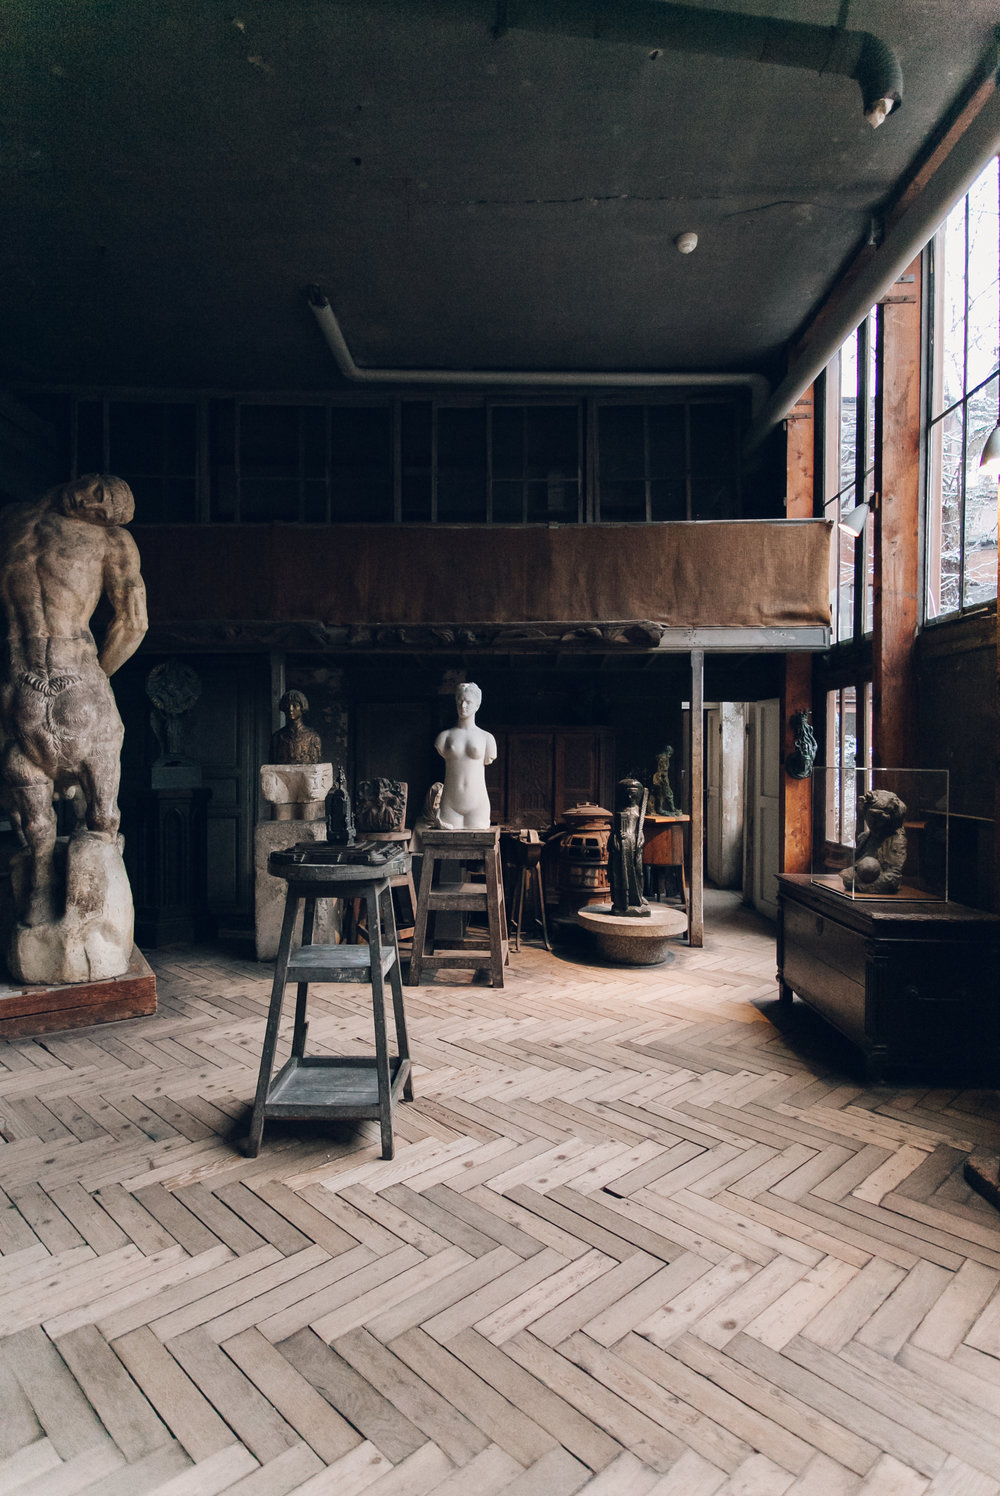 Musée Bourdelle in Paris by Haarkon.